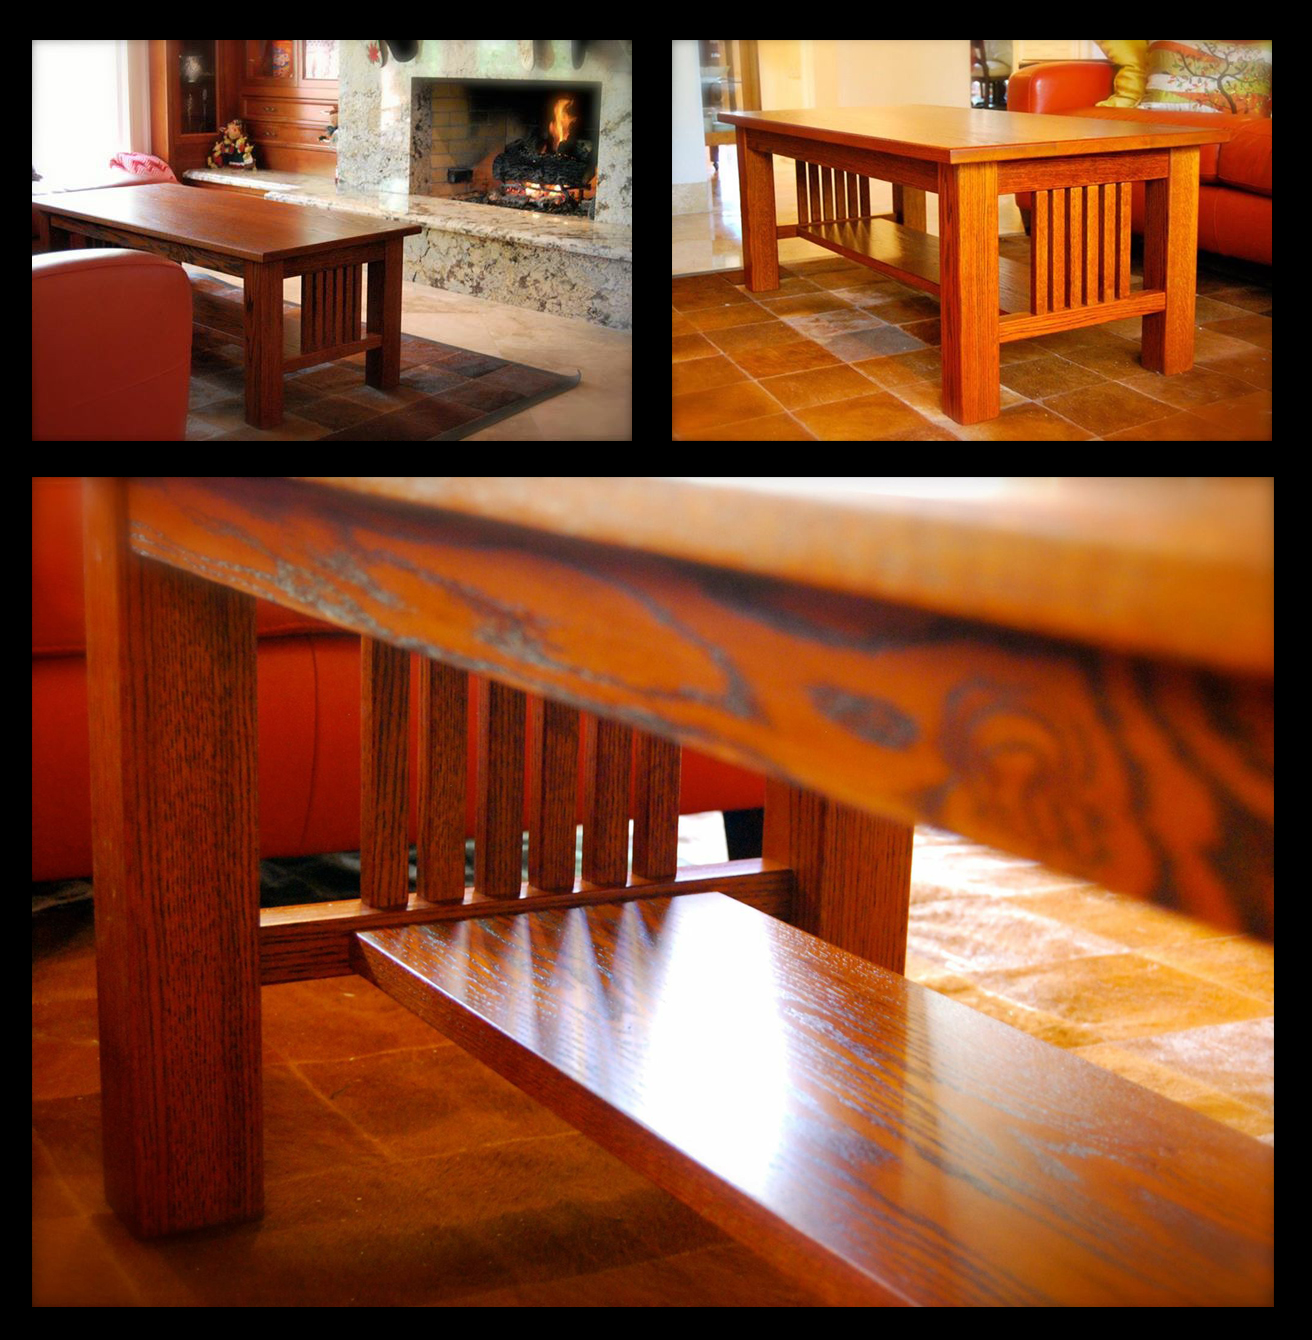 Water based dye stain general finishes coffee table in a fabulous orange and brown dye stain mix nvjuhfo Image collections